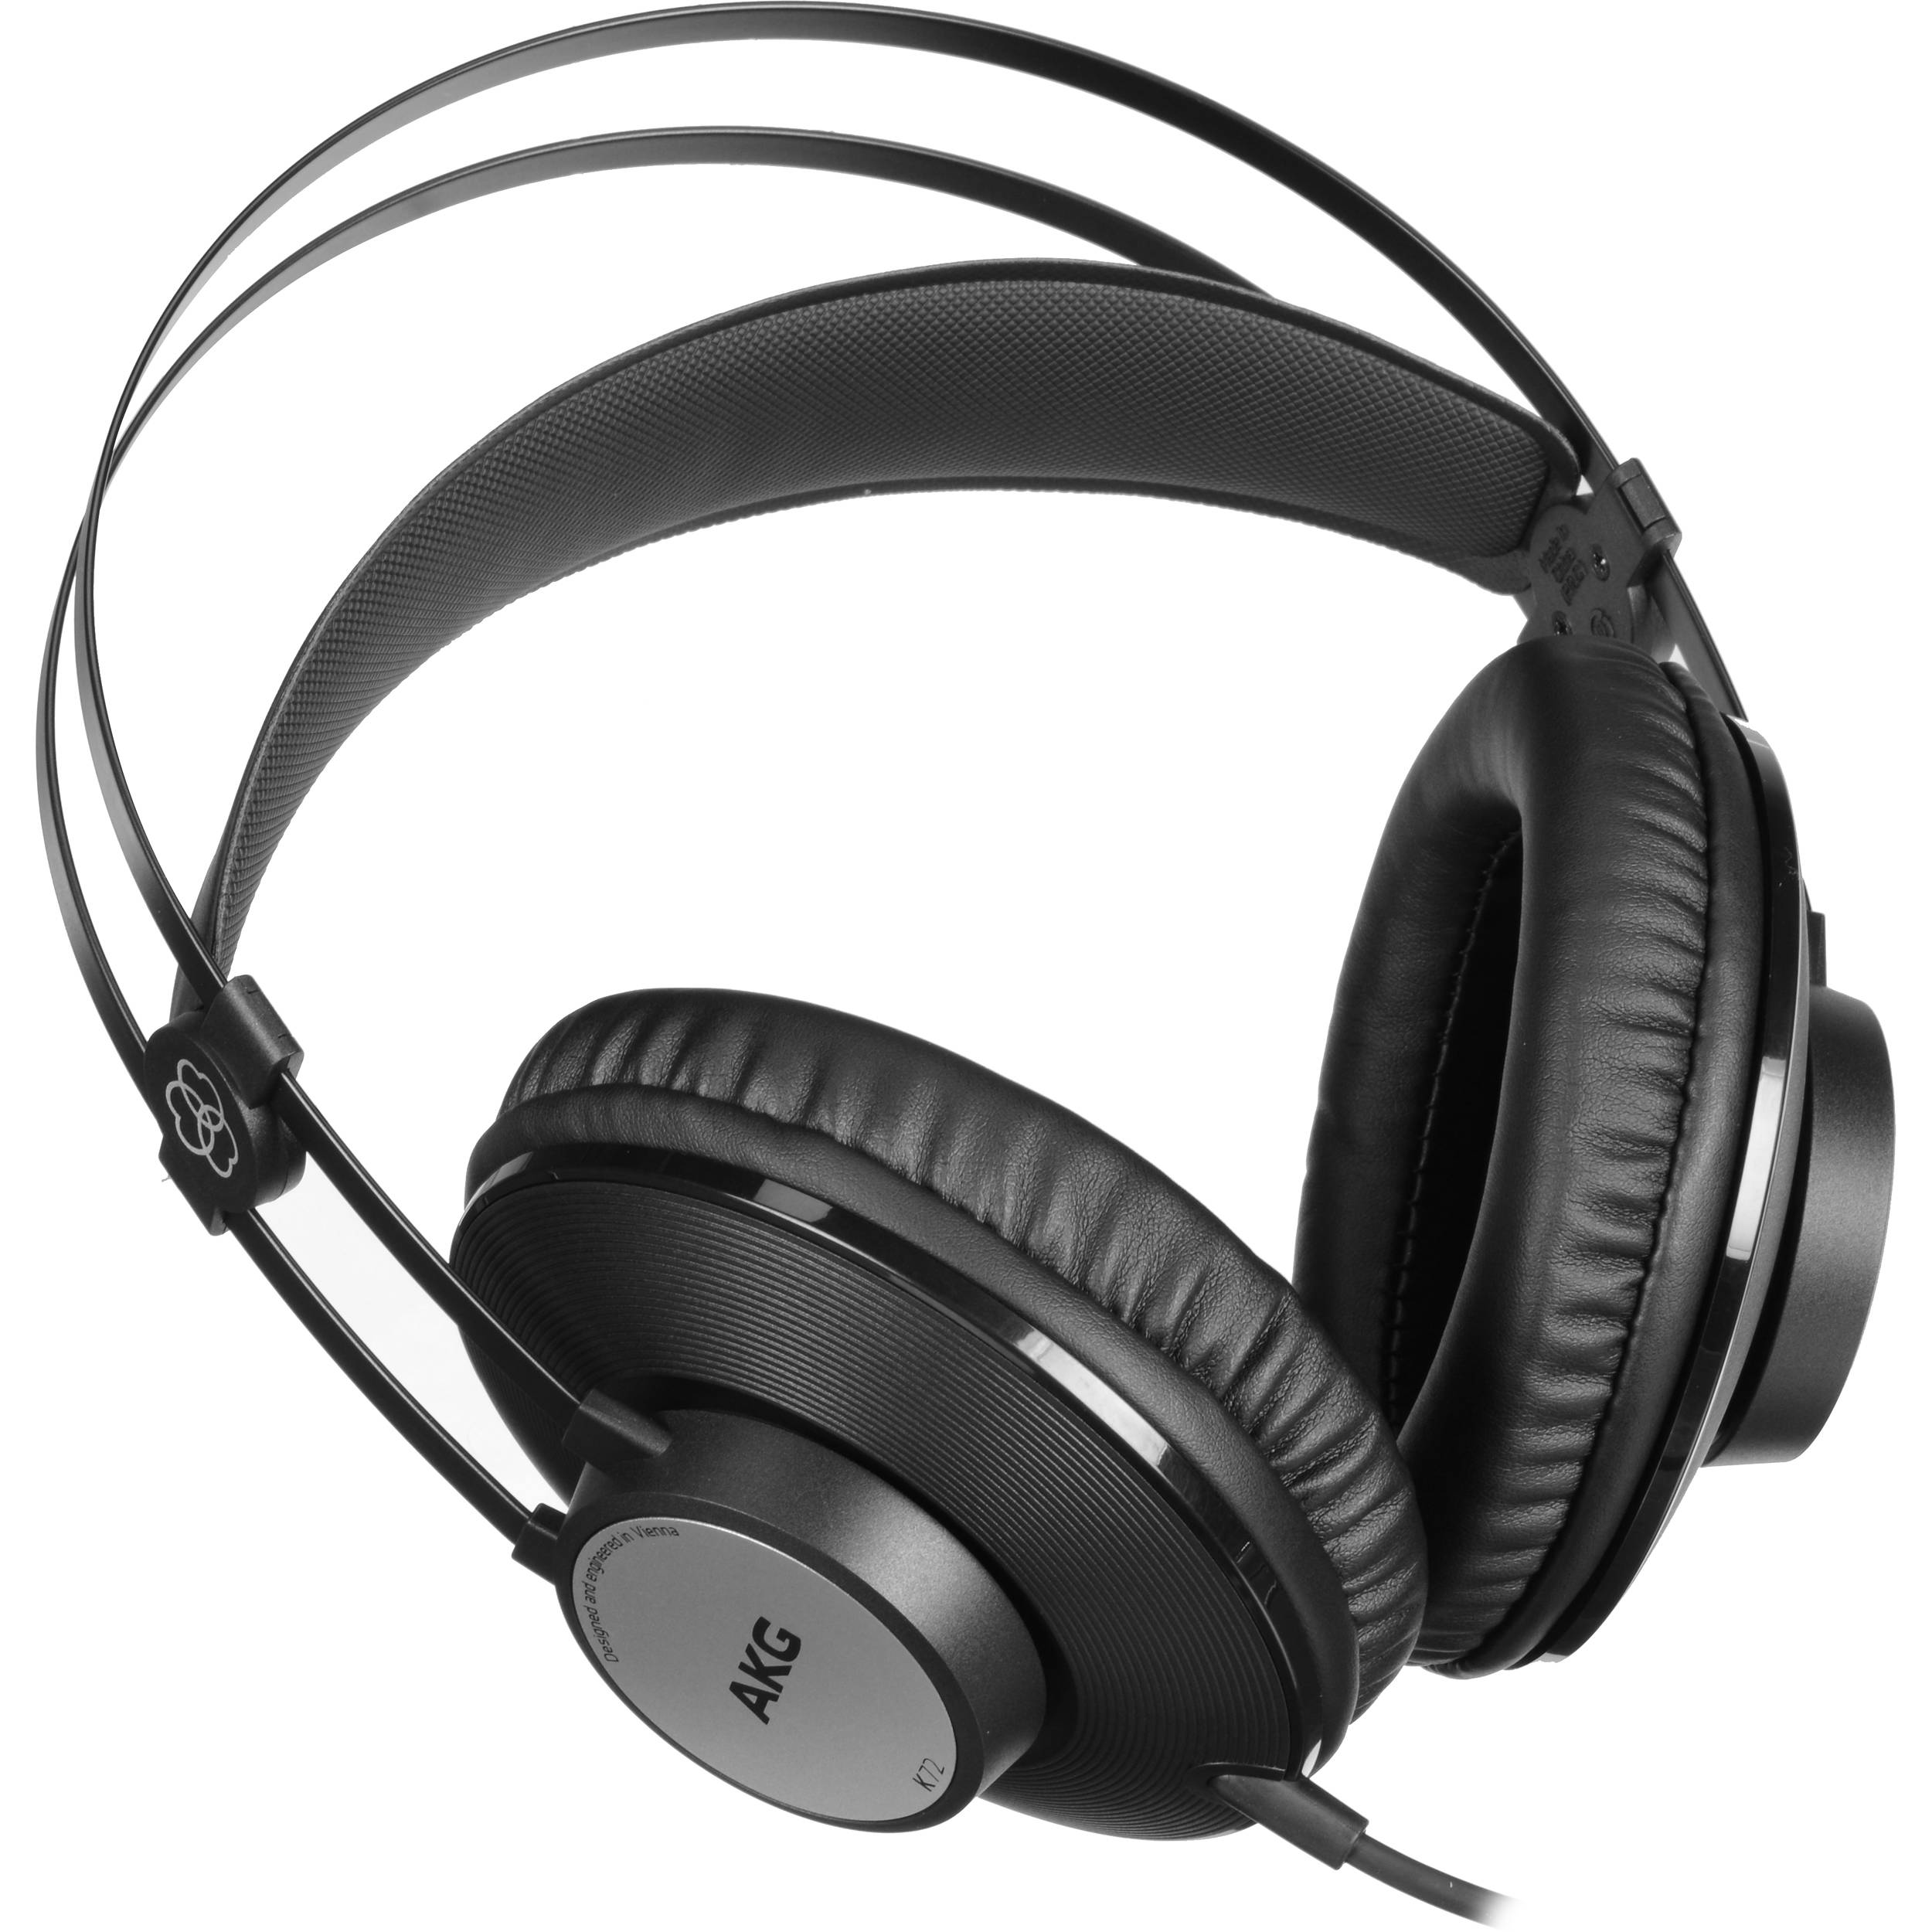 Compare Novelty Travel Portable On-Ear Foldable Headphones Hello My Name Is Pa-Pu - Paul Hello My Name Is